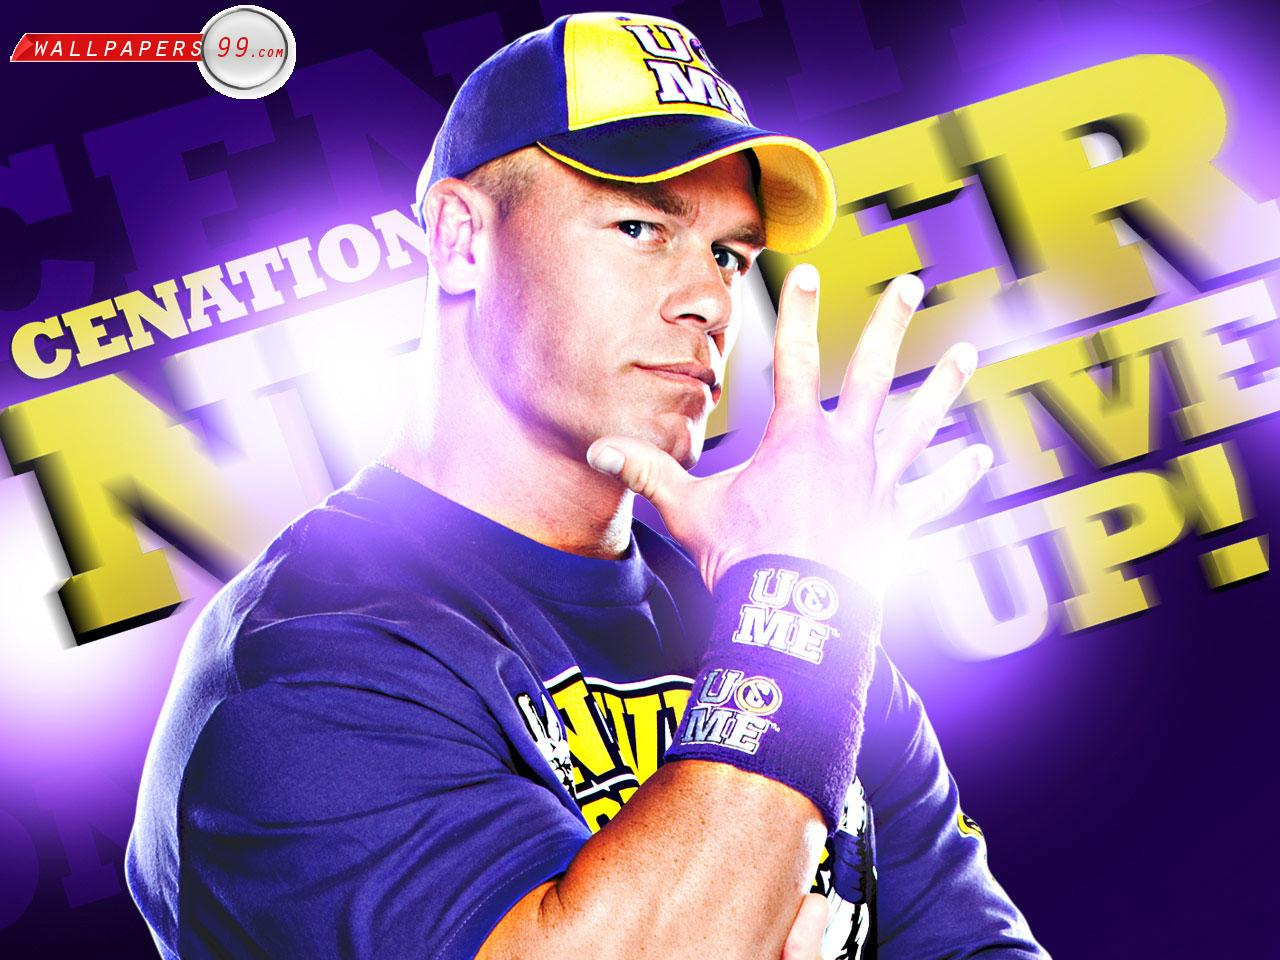 John-Cena-HD-Backgrounds-×-John-Cena-Pictures-Wallpap-wallpaper-wp3407612